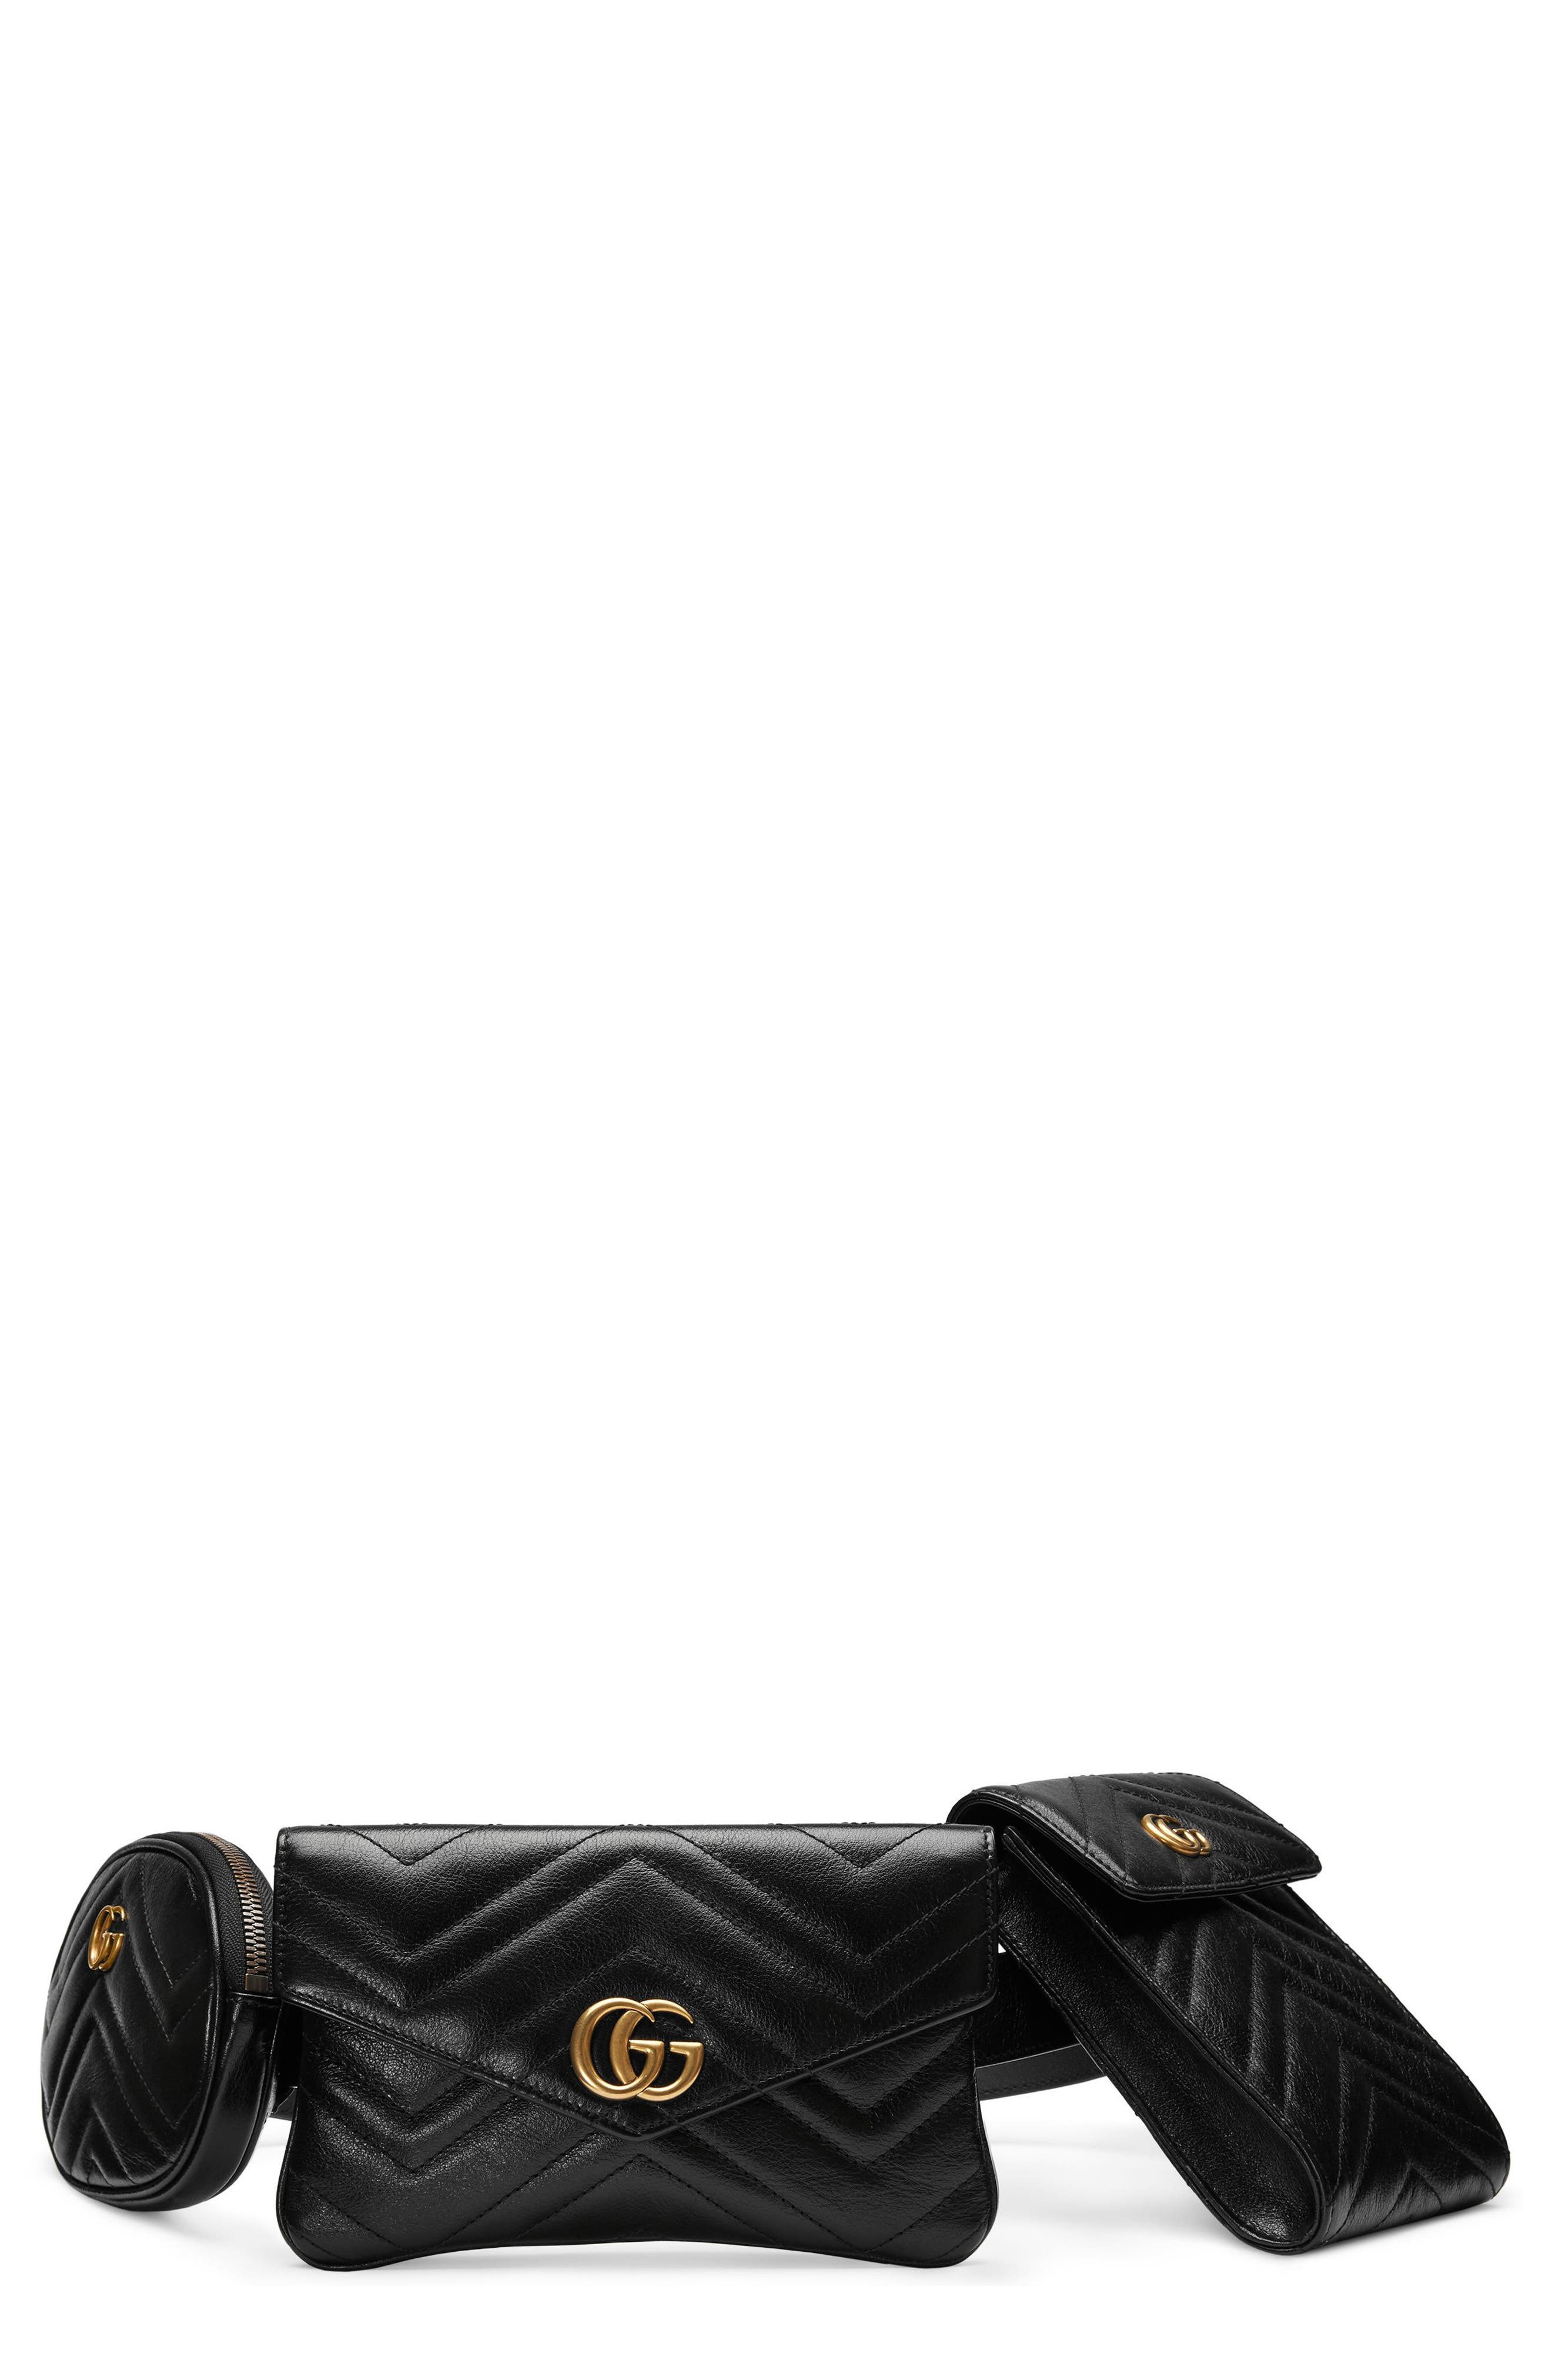 GG Marmont 2.0 Matelassé Triple Pouch Leather Belt Bag,                             Main thumbnail 1, color,                             001